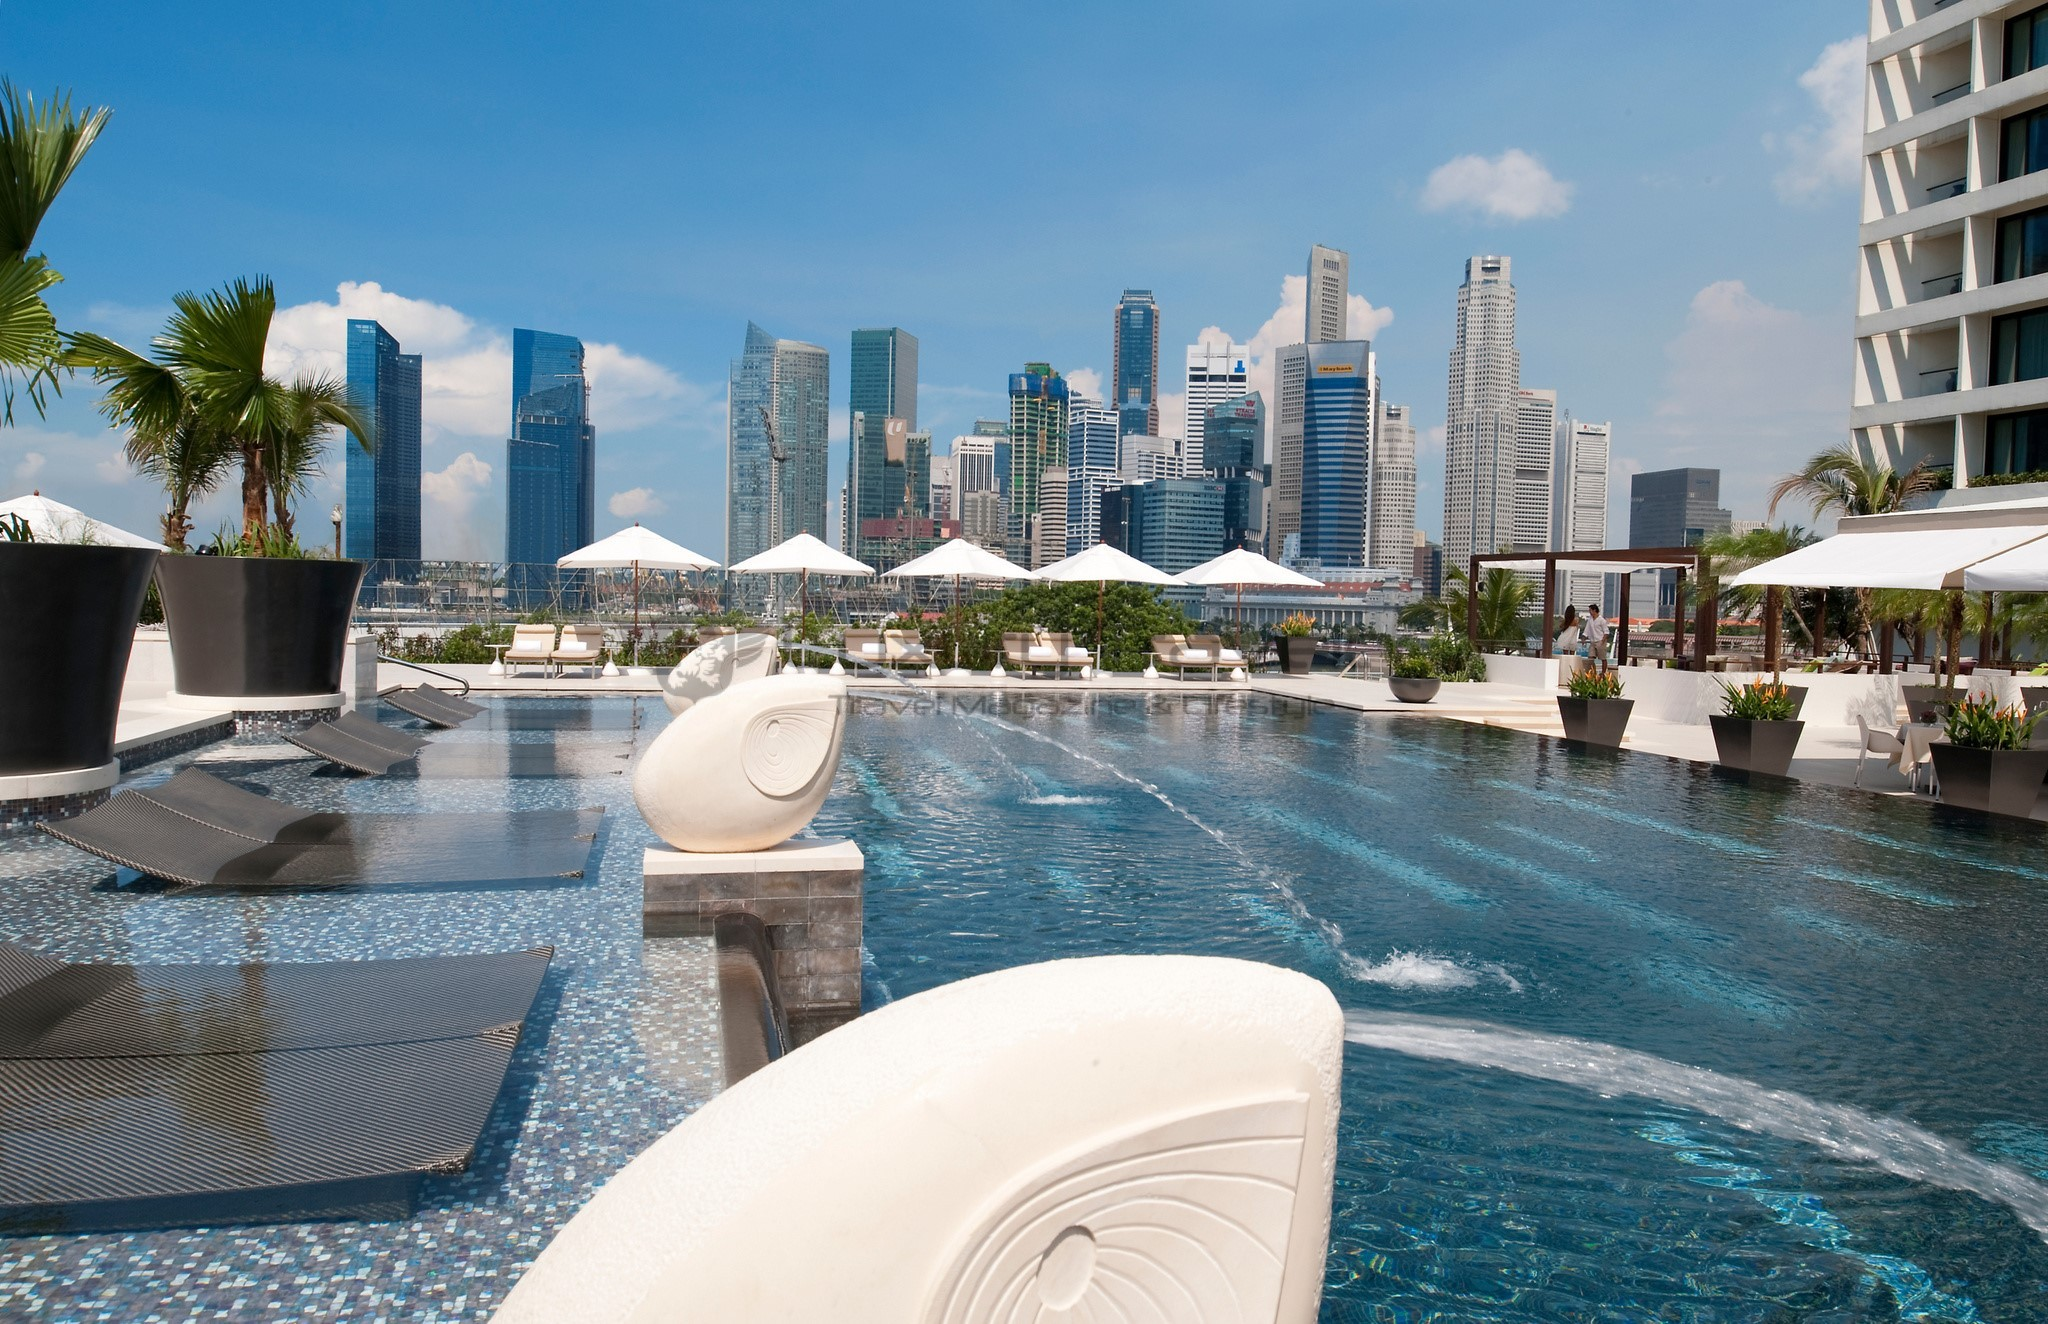 Mandarin oriental singapore luxury 5 star hotel luxury - Marina mandarin singapore swimming pool ...